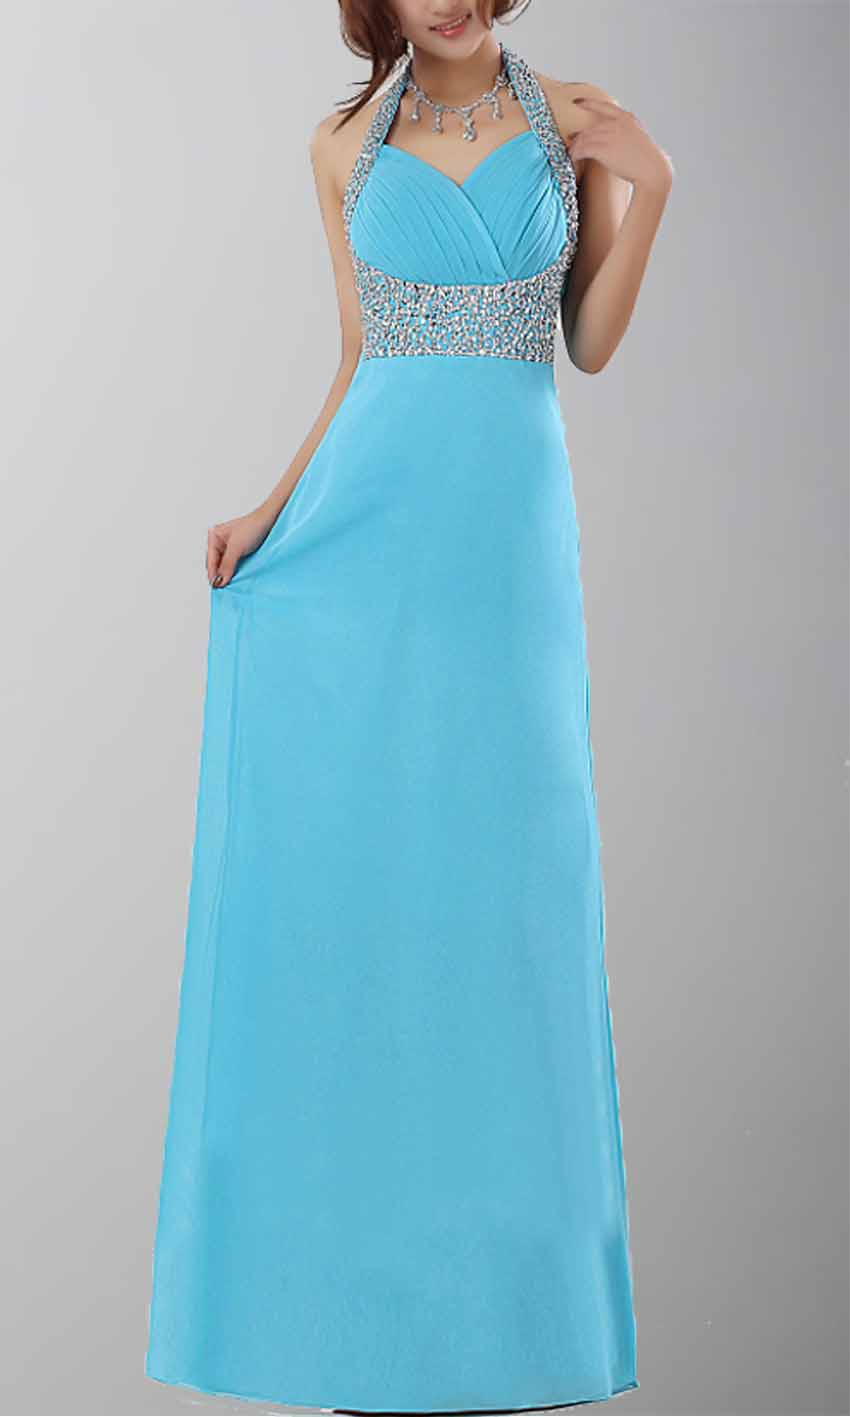 Blue Halter Long Beaded Prom Dress KSP124 [KSP124] - £99.00 : Cheap Prom Dresses Uk, Bridesmaid Dresses, 2014 Prom & Evening Dresses, Look for cheap elegant prom dresses 2014, cocktail gowns, or dresses for special occasions? kissprom.co.uk offers various bridesmaid dresses, evening dress, free shipping to UK etc.